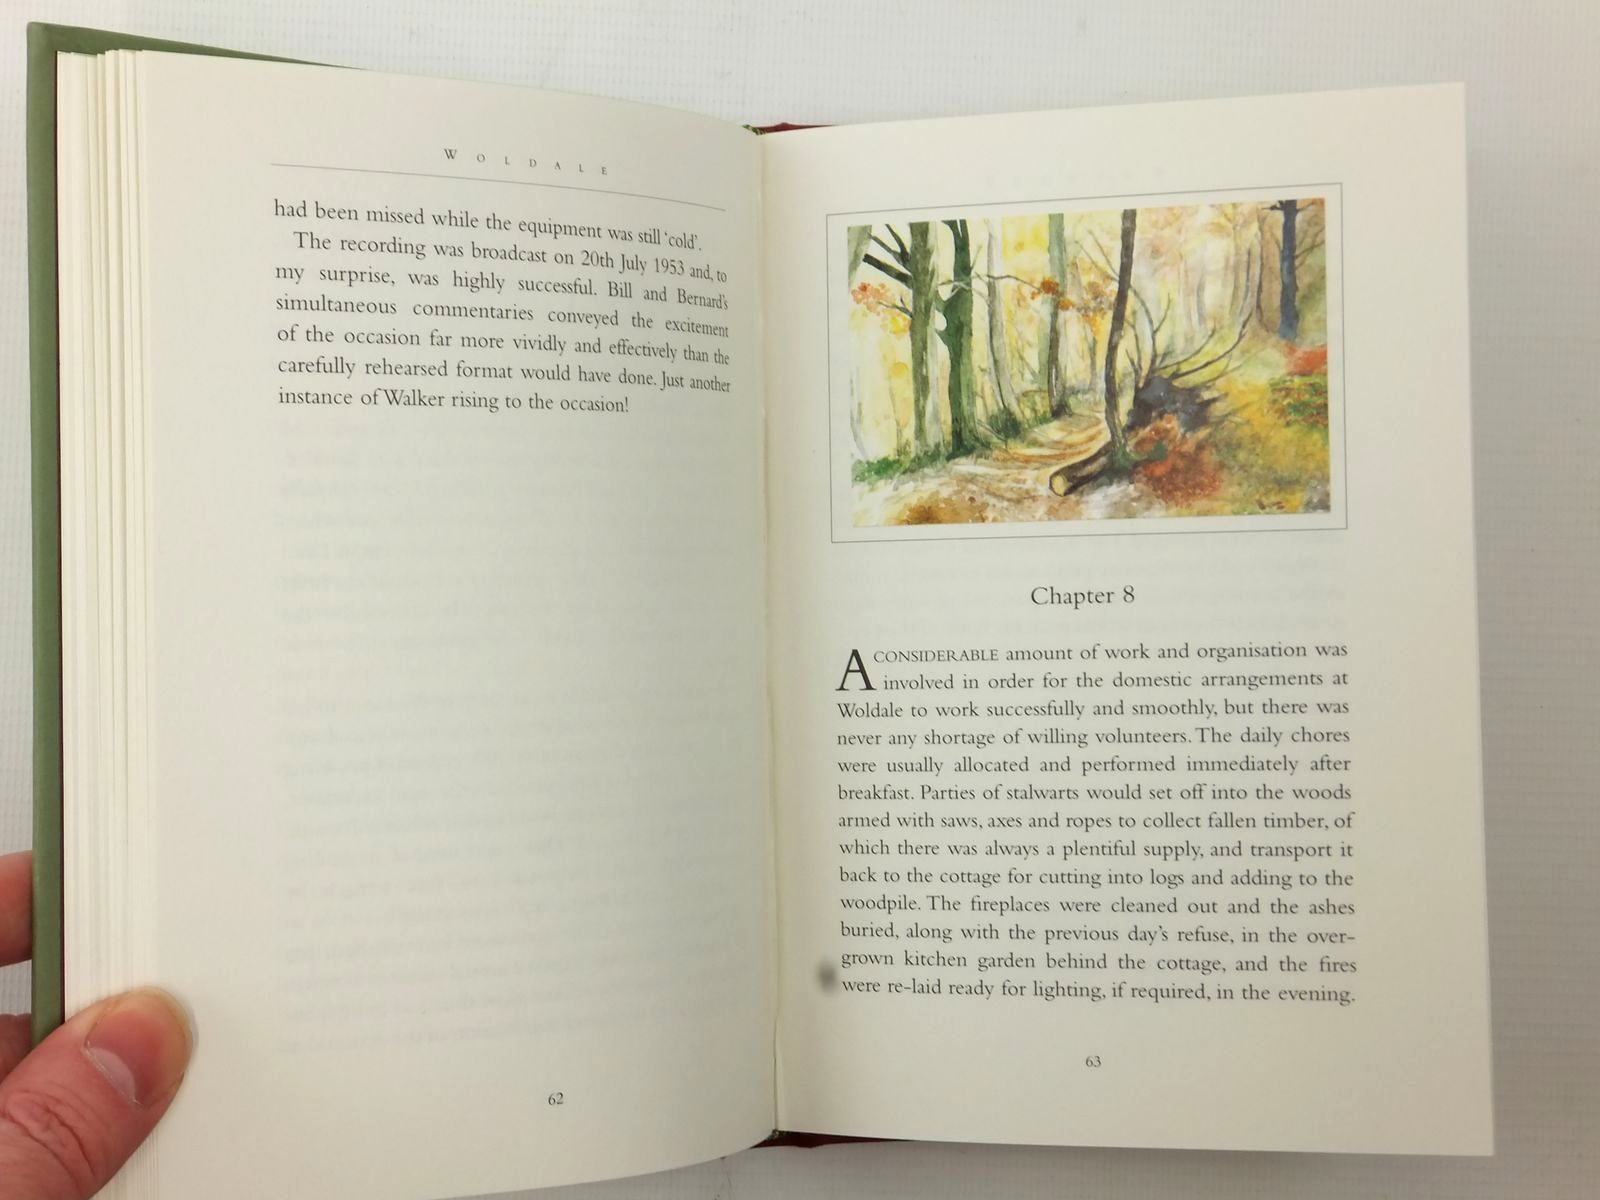 Photo of WOLDALE ... WHEN ALL THE TREES WERE GREEN written by Ingham, Maurice illustrated by Ingham, Maurice published by The Medlar Press (STOCK CODE: 2122553)  for sale by Stella & Rose's Books